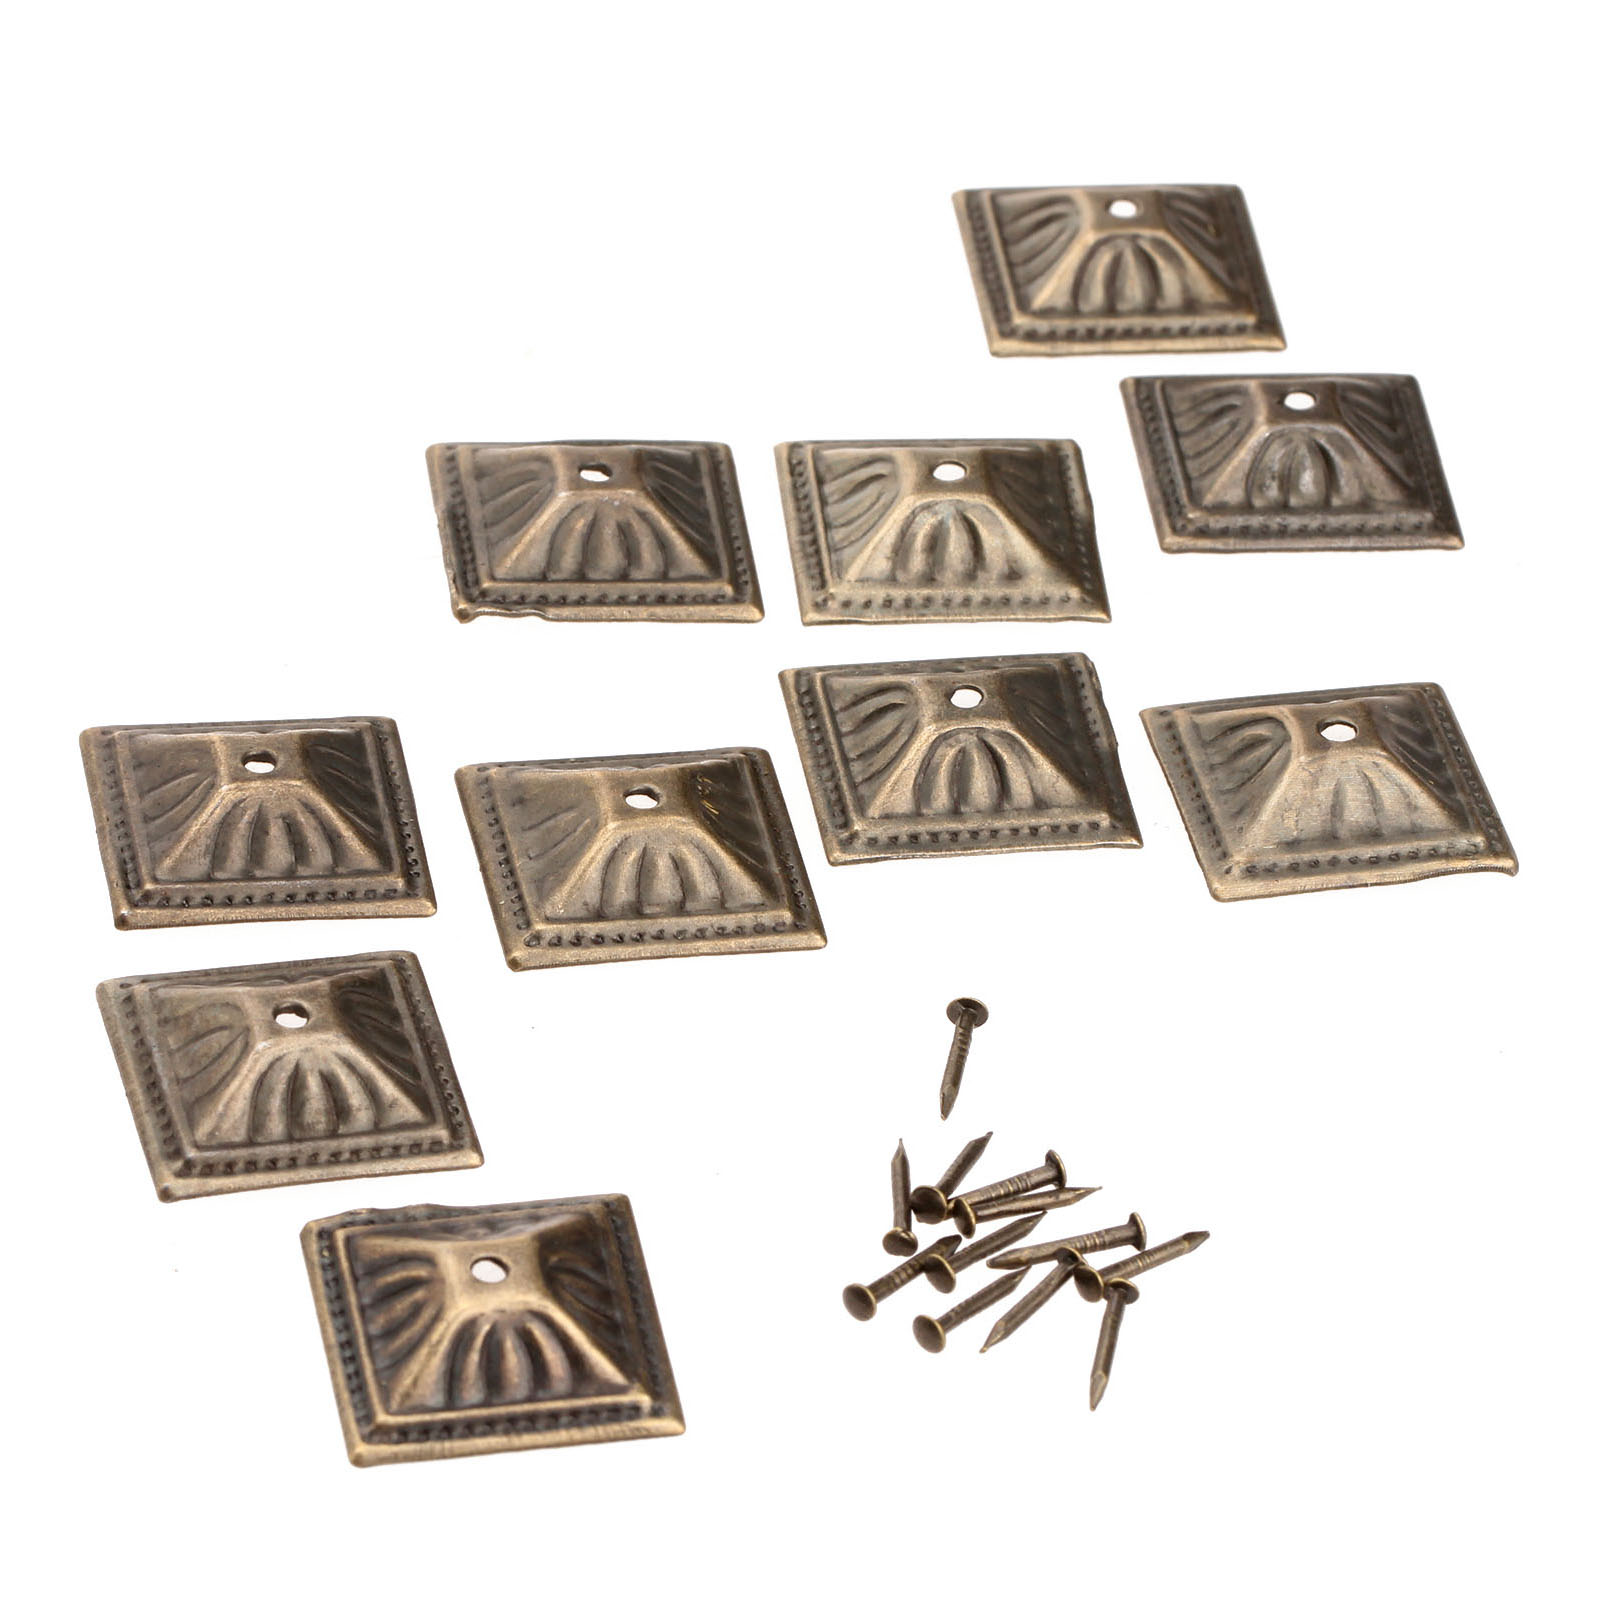 10Pcs Antique Bronze 21x21mm Square Nailhead Upholstery Decorative Nails Tack Stud Jewelry Wooden Box Furniture Pushpin Doornail(China (Mainland))